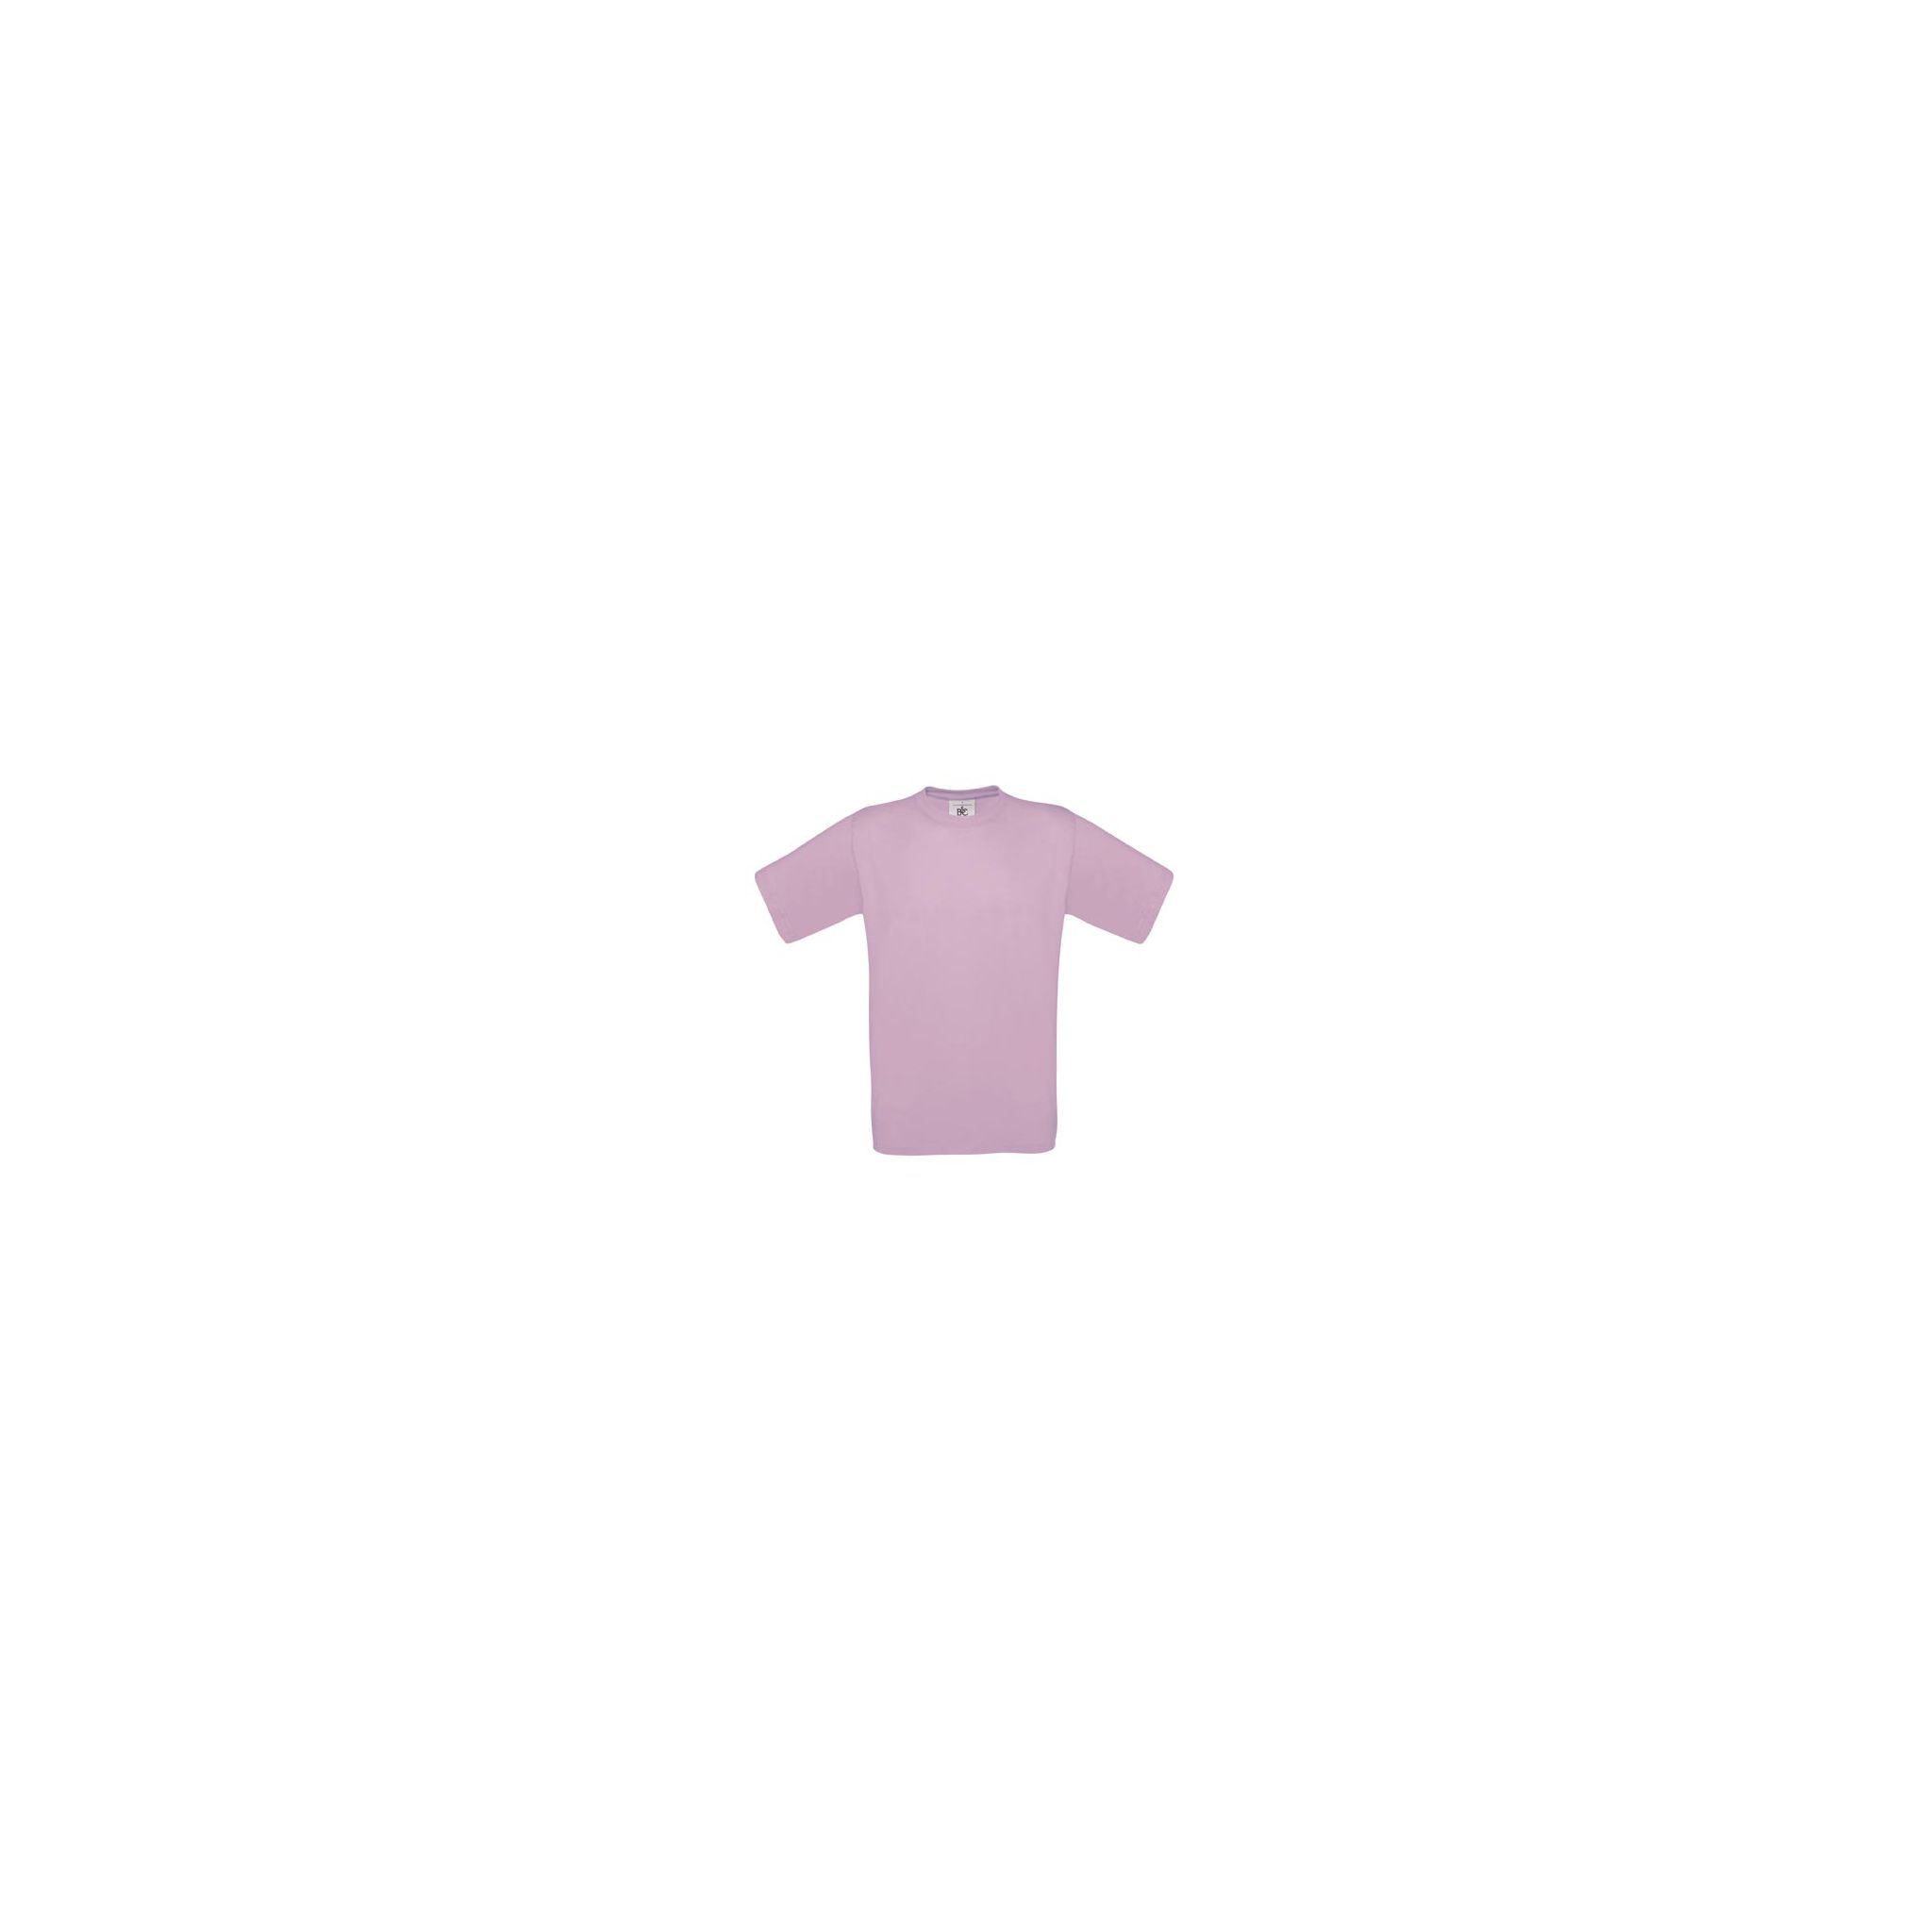 PACIFIC PINK